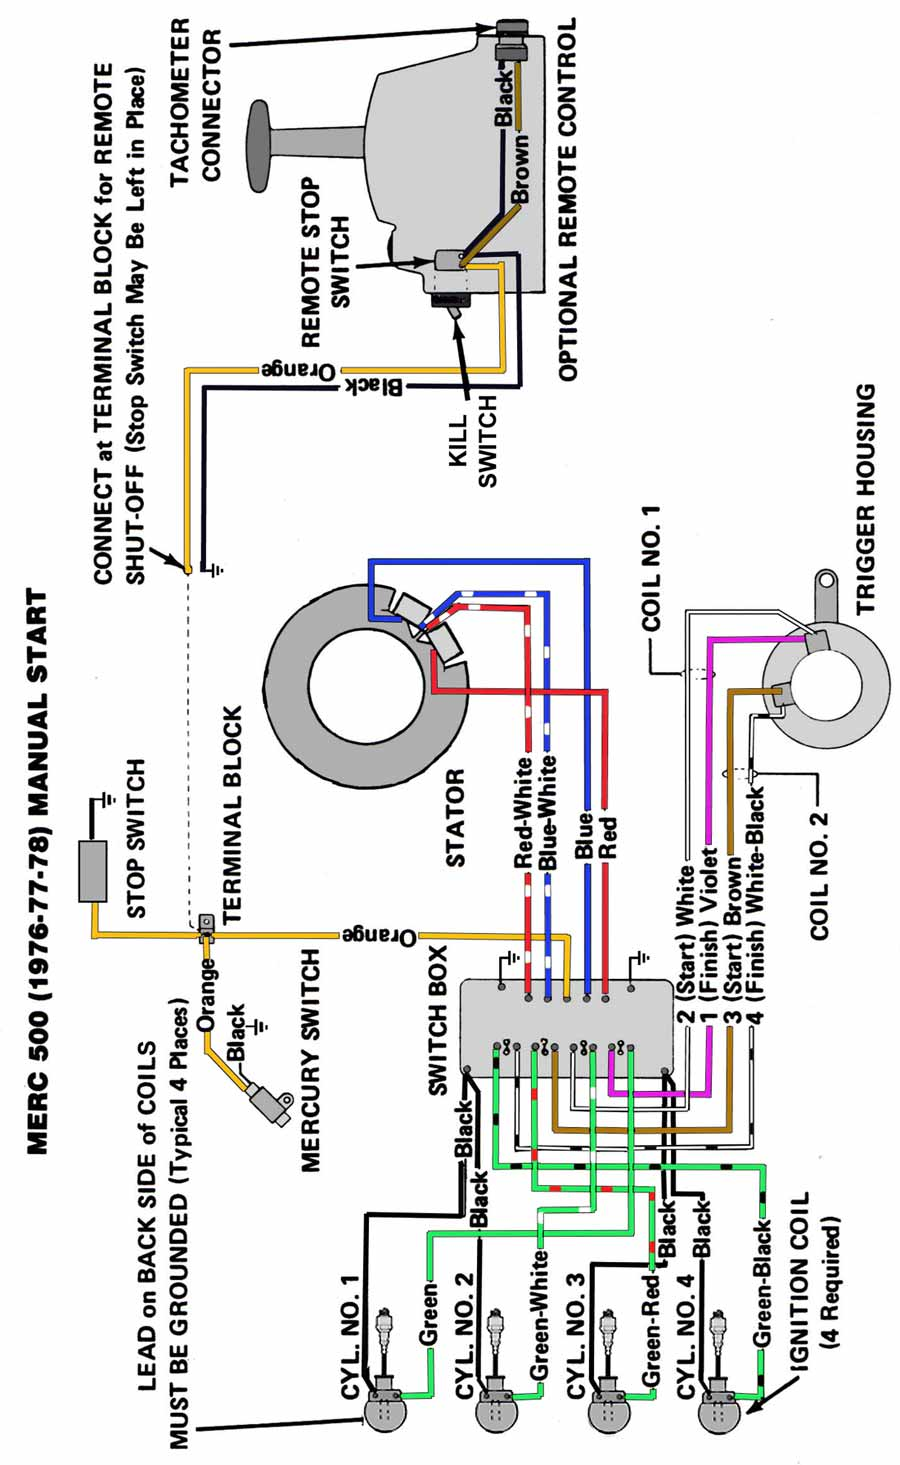 hight resolution of mercury marine wiring diagram 1998 wiring diagram blogs mercury 150 wiring diagram mercury 225 wiring diagram